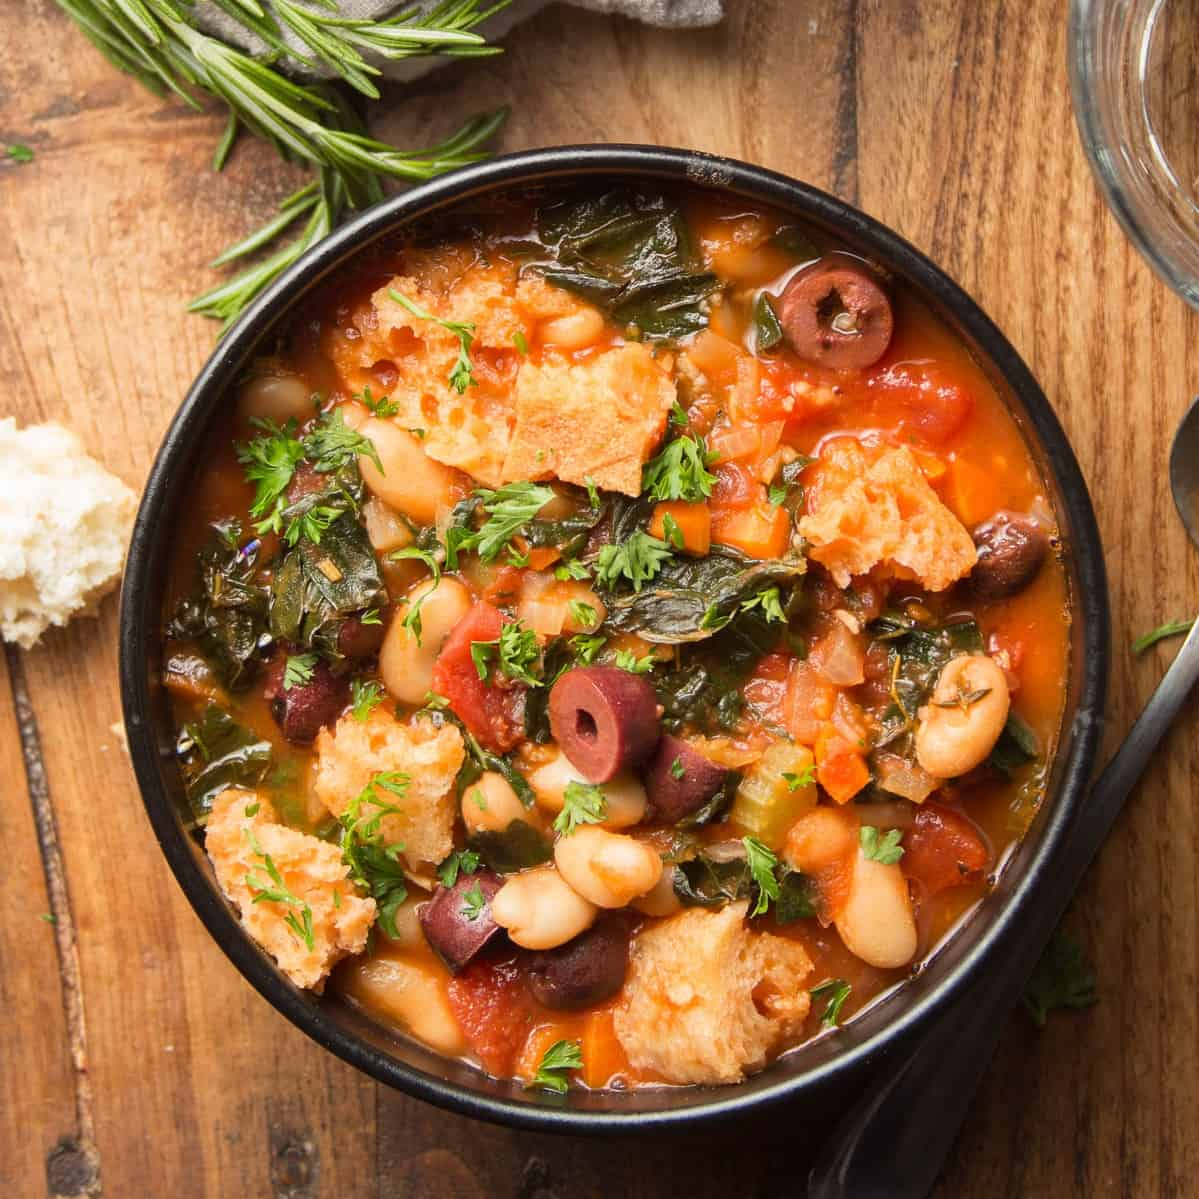 Bowl of Ribollita on a Wooden Surface